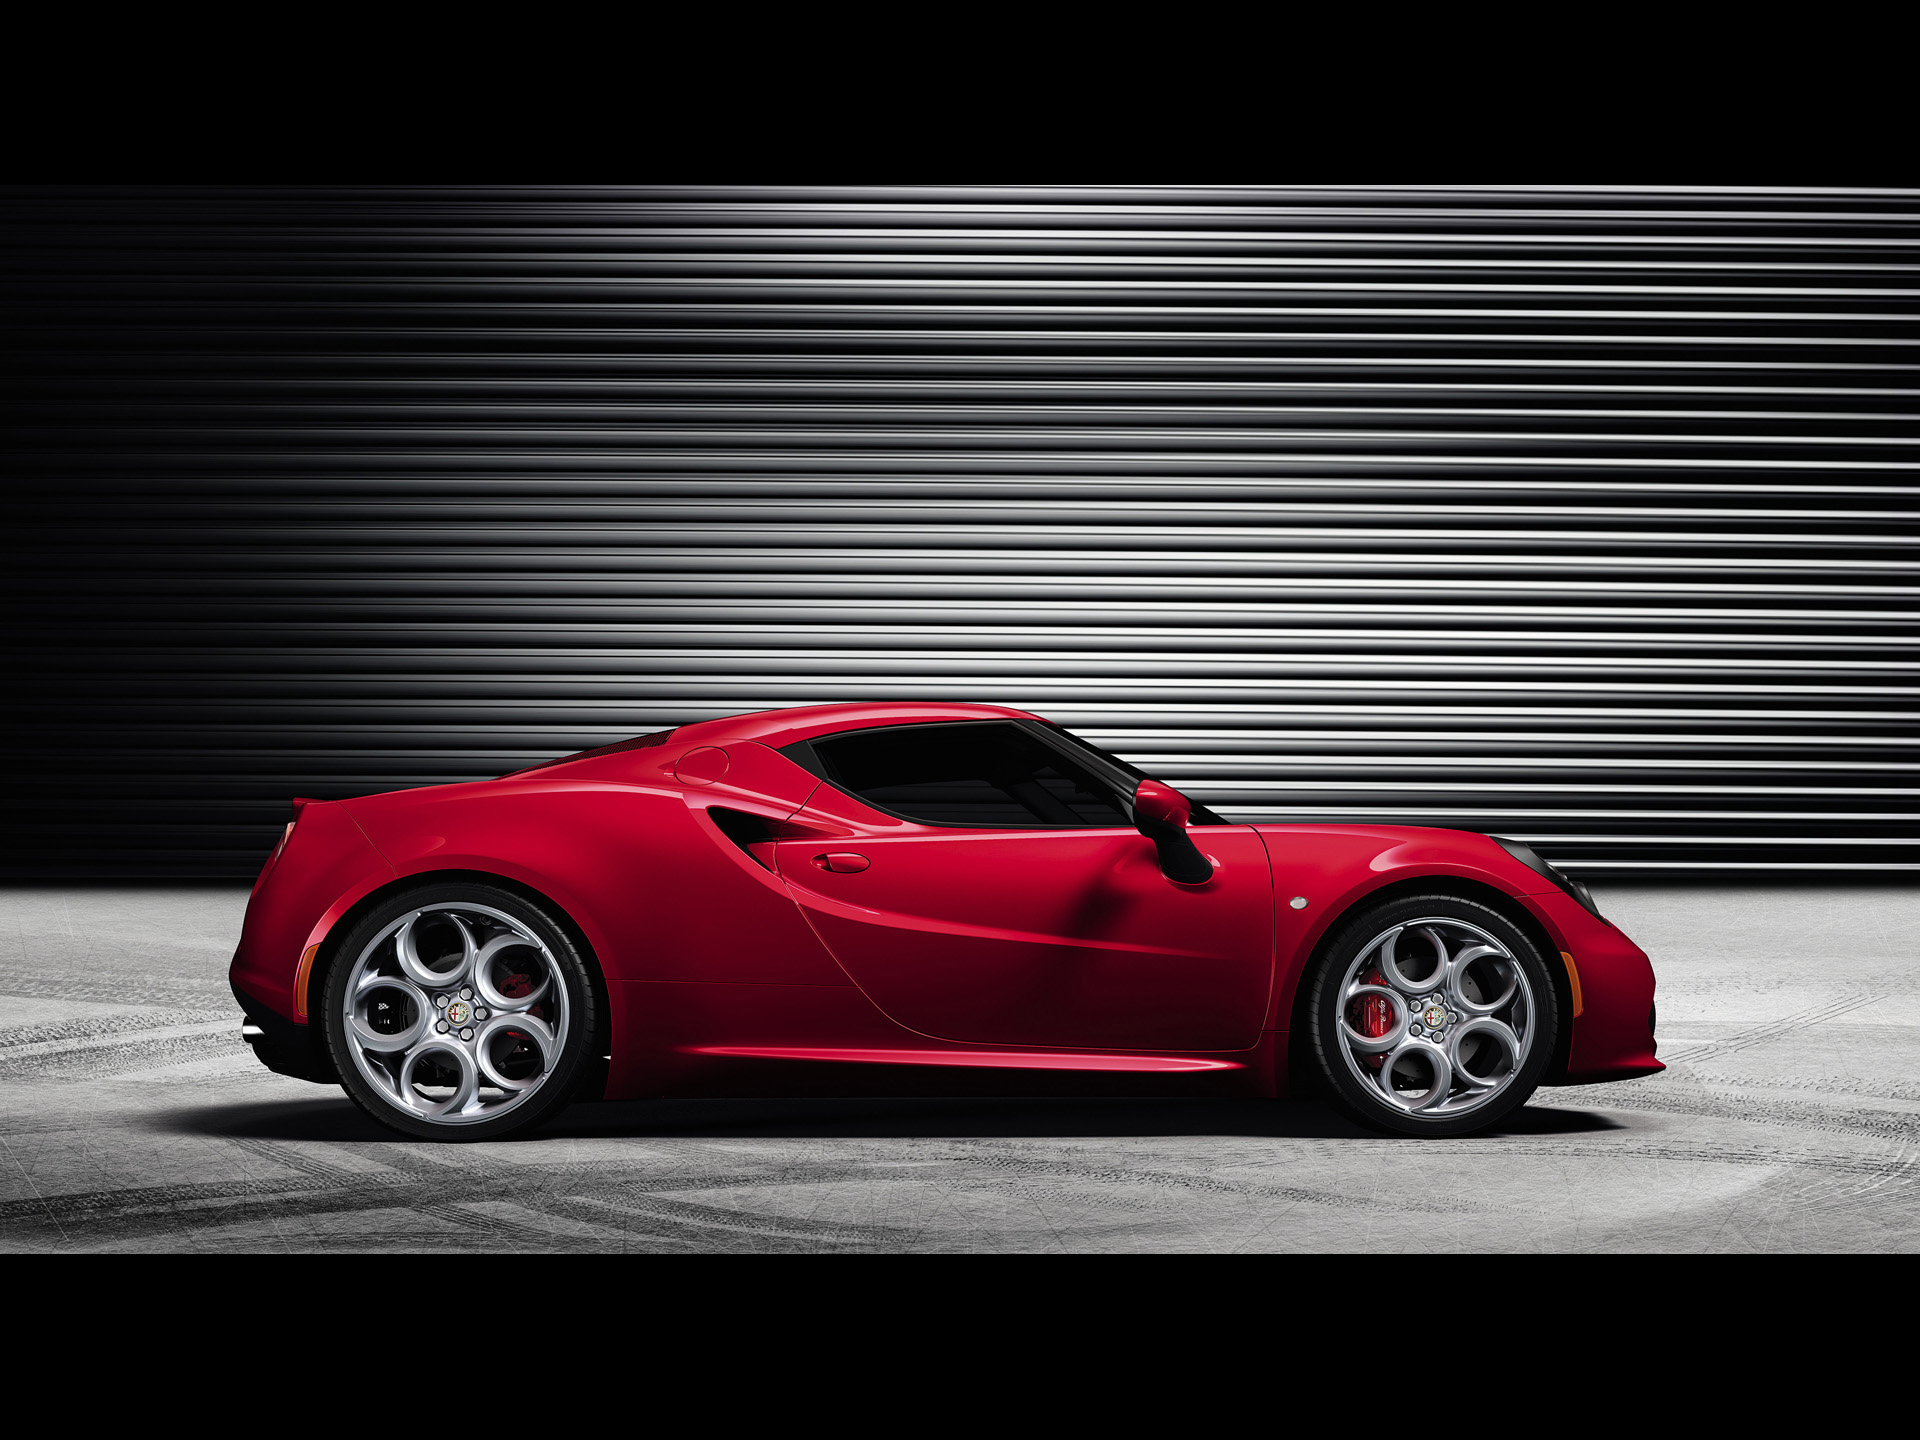 click to free download the wallpaper--World-Famous Super Cars Image of Red Alfa Romeo 4C Just Out from Its Garage, Expect Its Speed 1920X1440 free wallpaper download